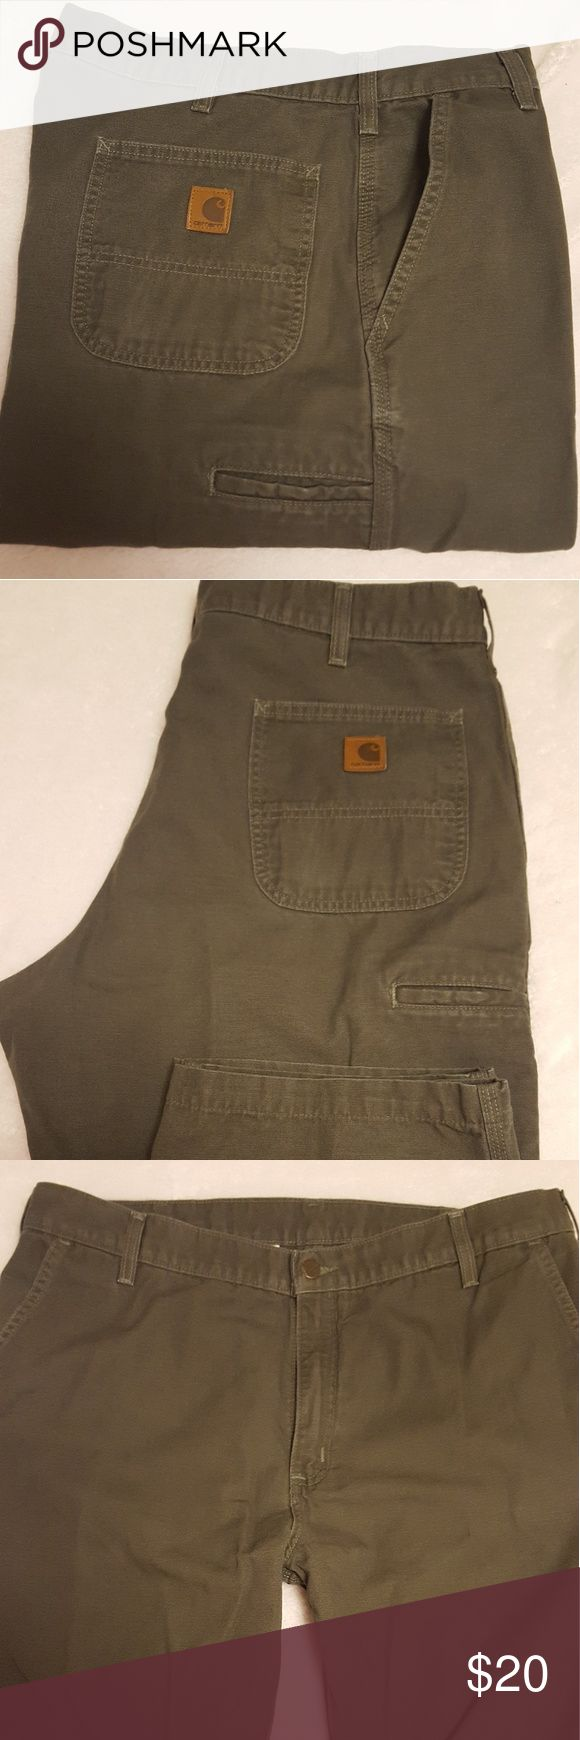 Carhartt jeans Dungaree work pants, no abrasion etc., excellent condition. Carhartt Jeans